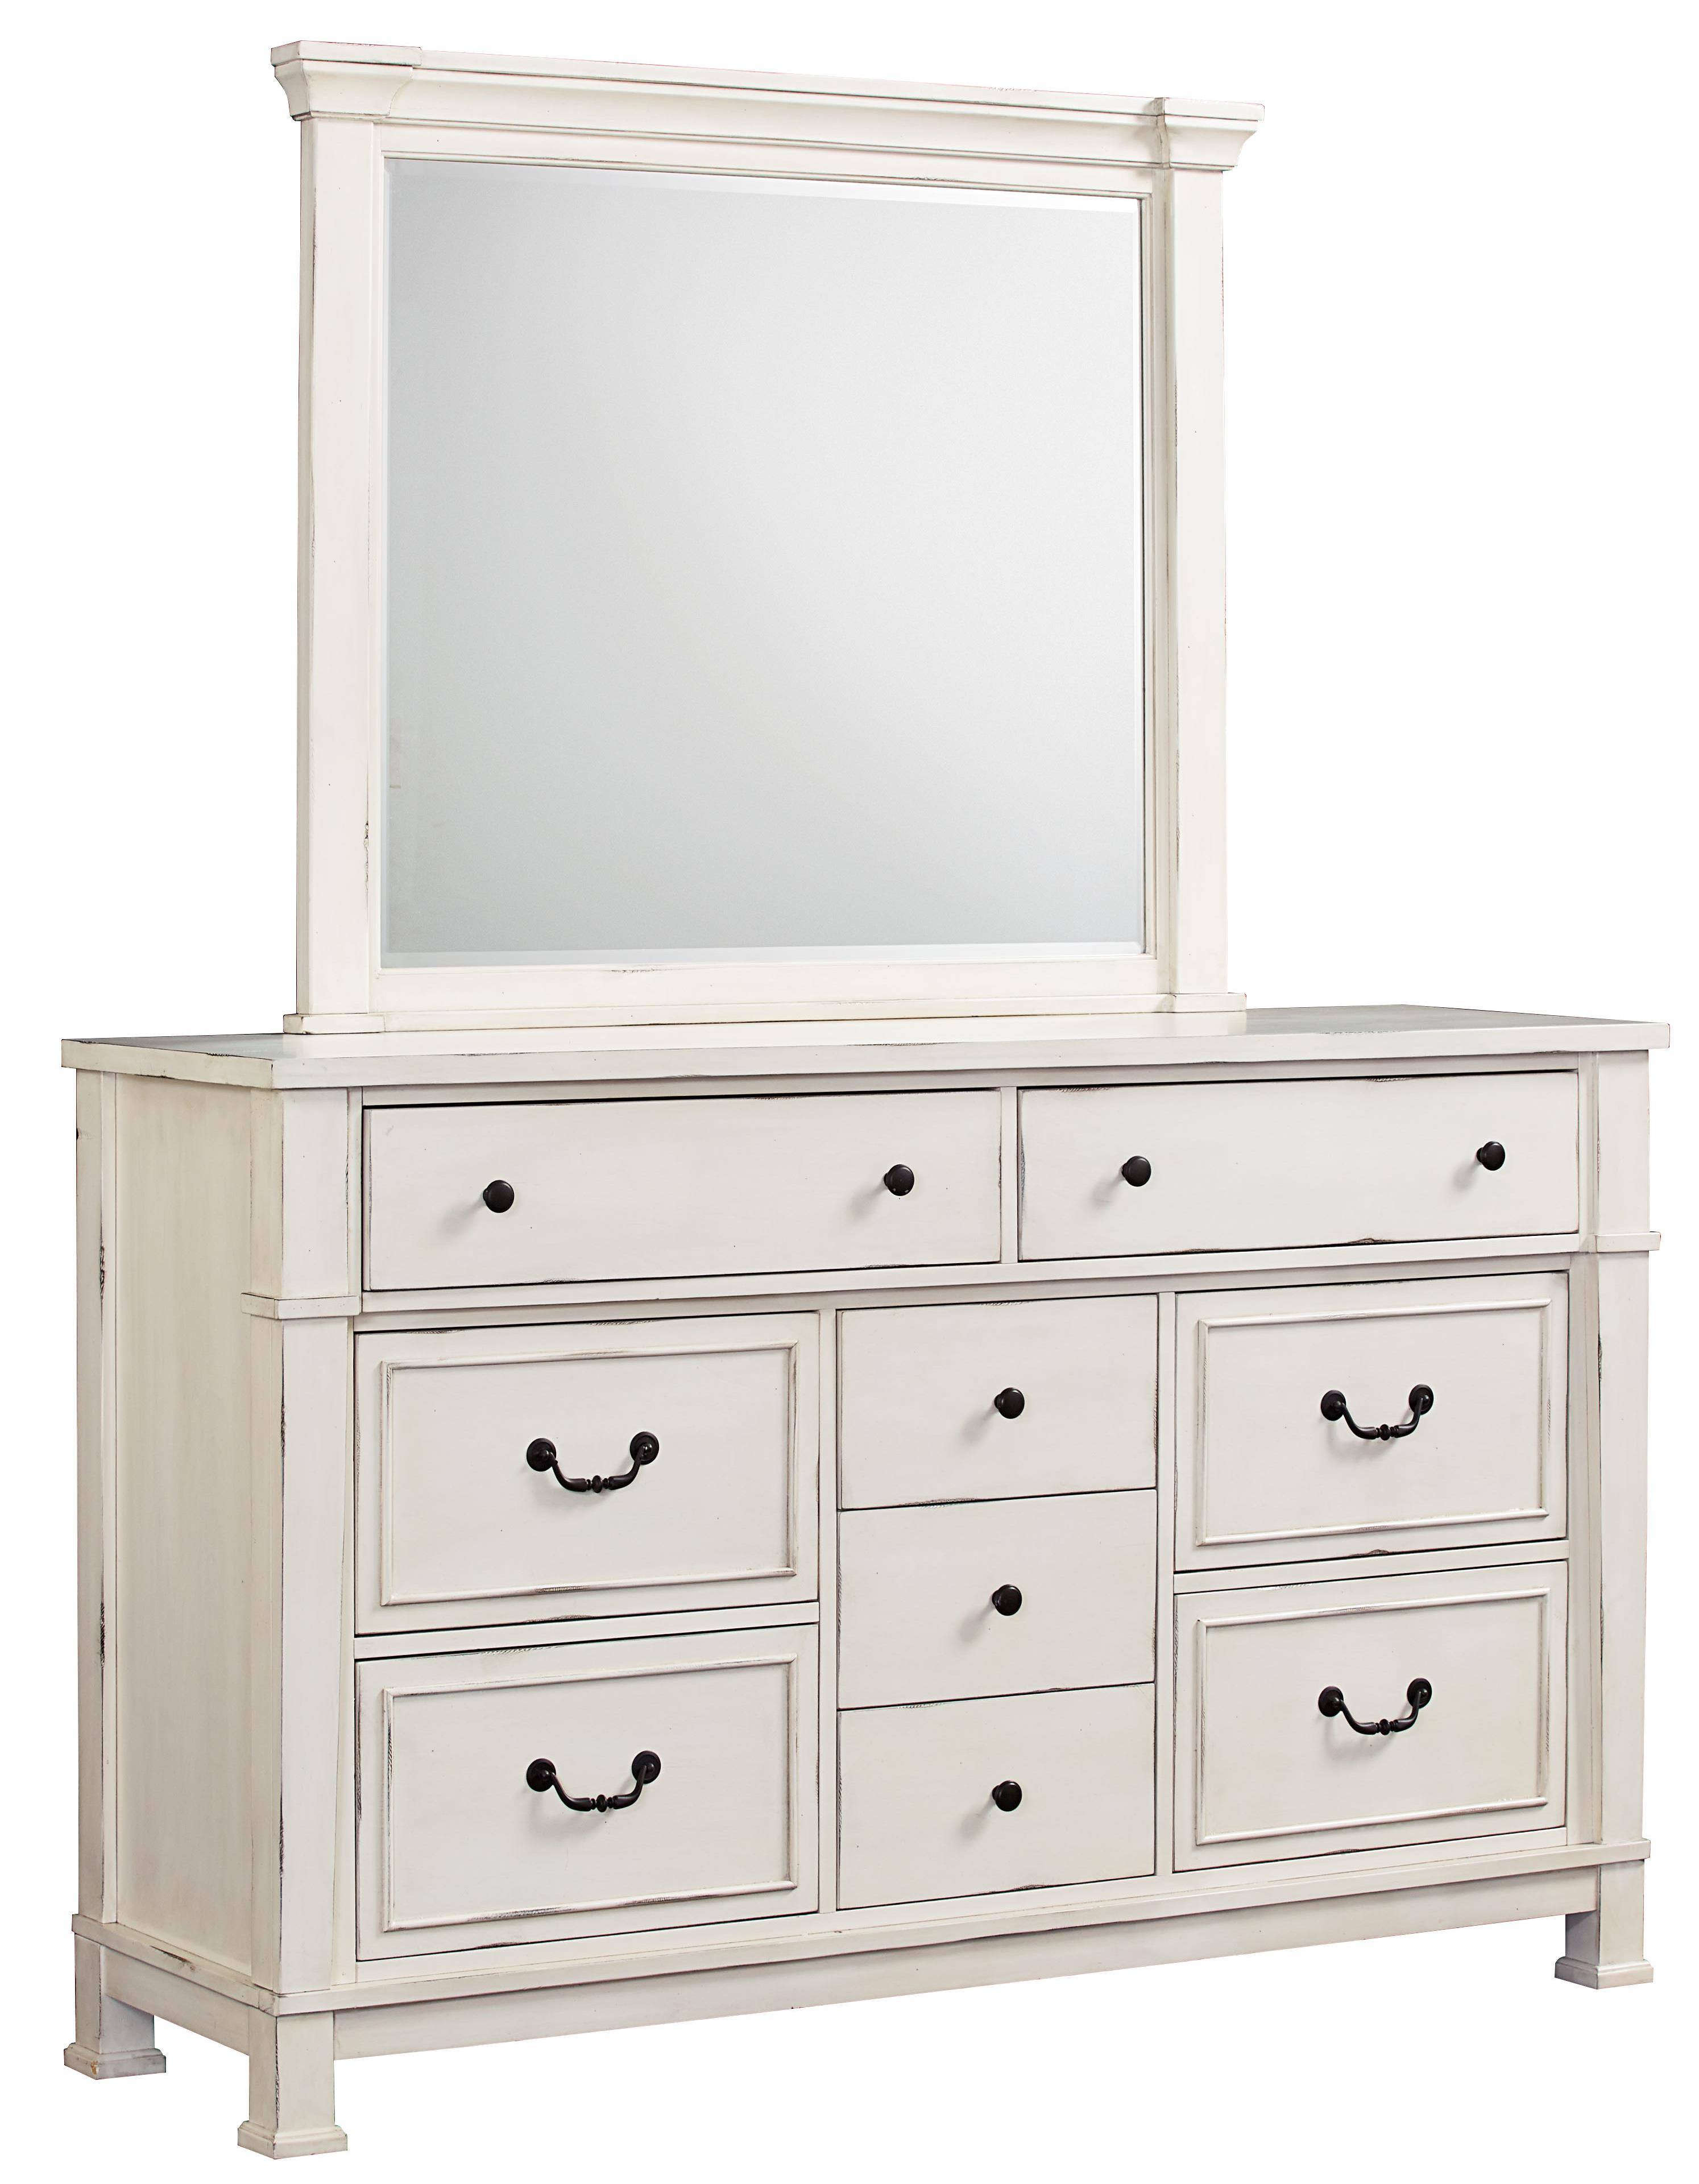 standard furniture chesapeake bay vintage white dresser and mirror set dunk bright furniture. Black Bedroom Furniture Sets. Home Design Ideas